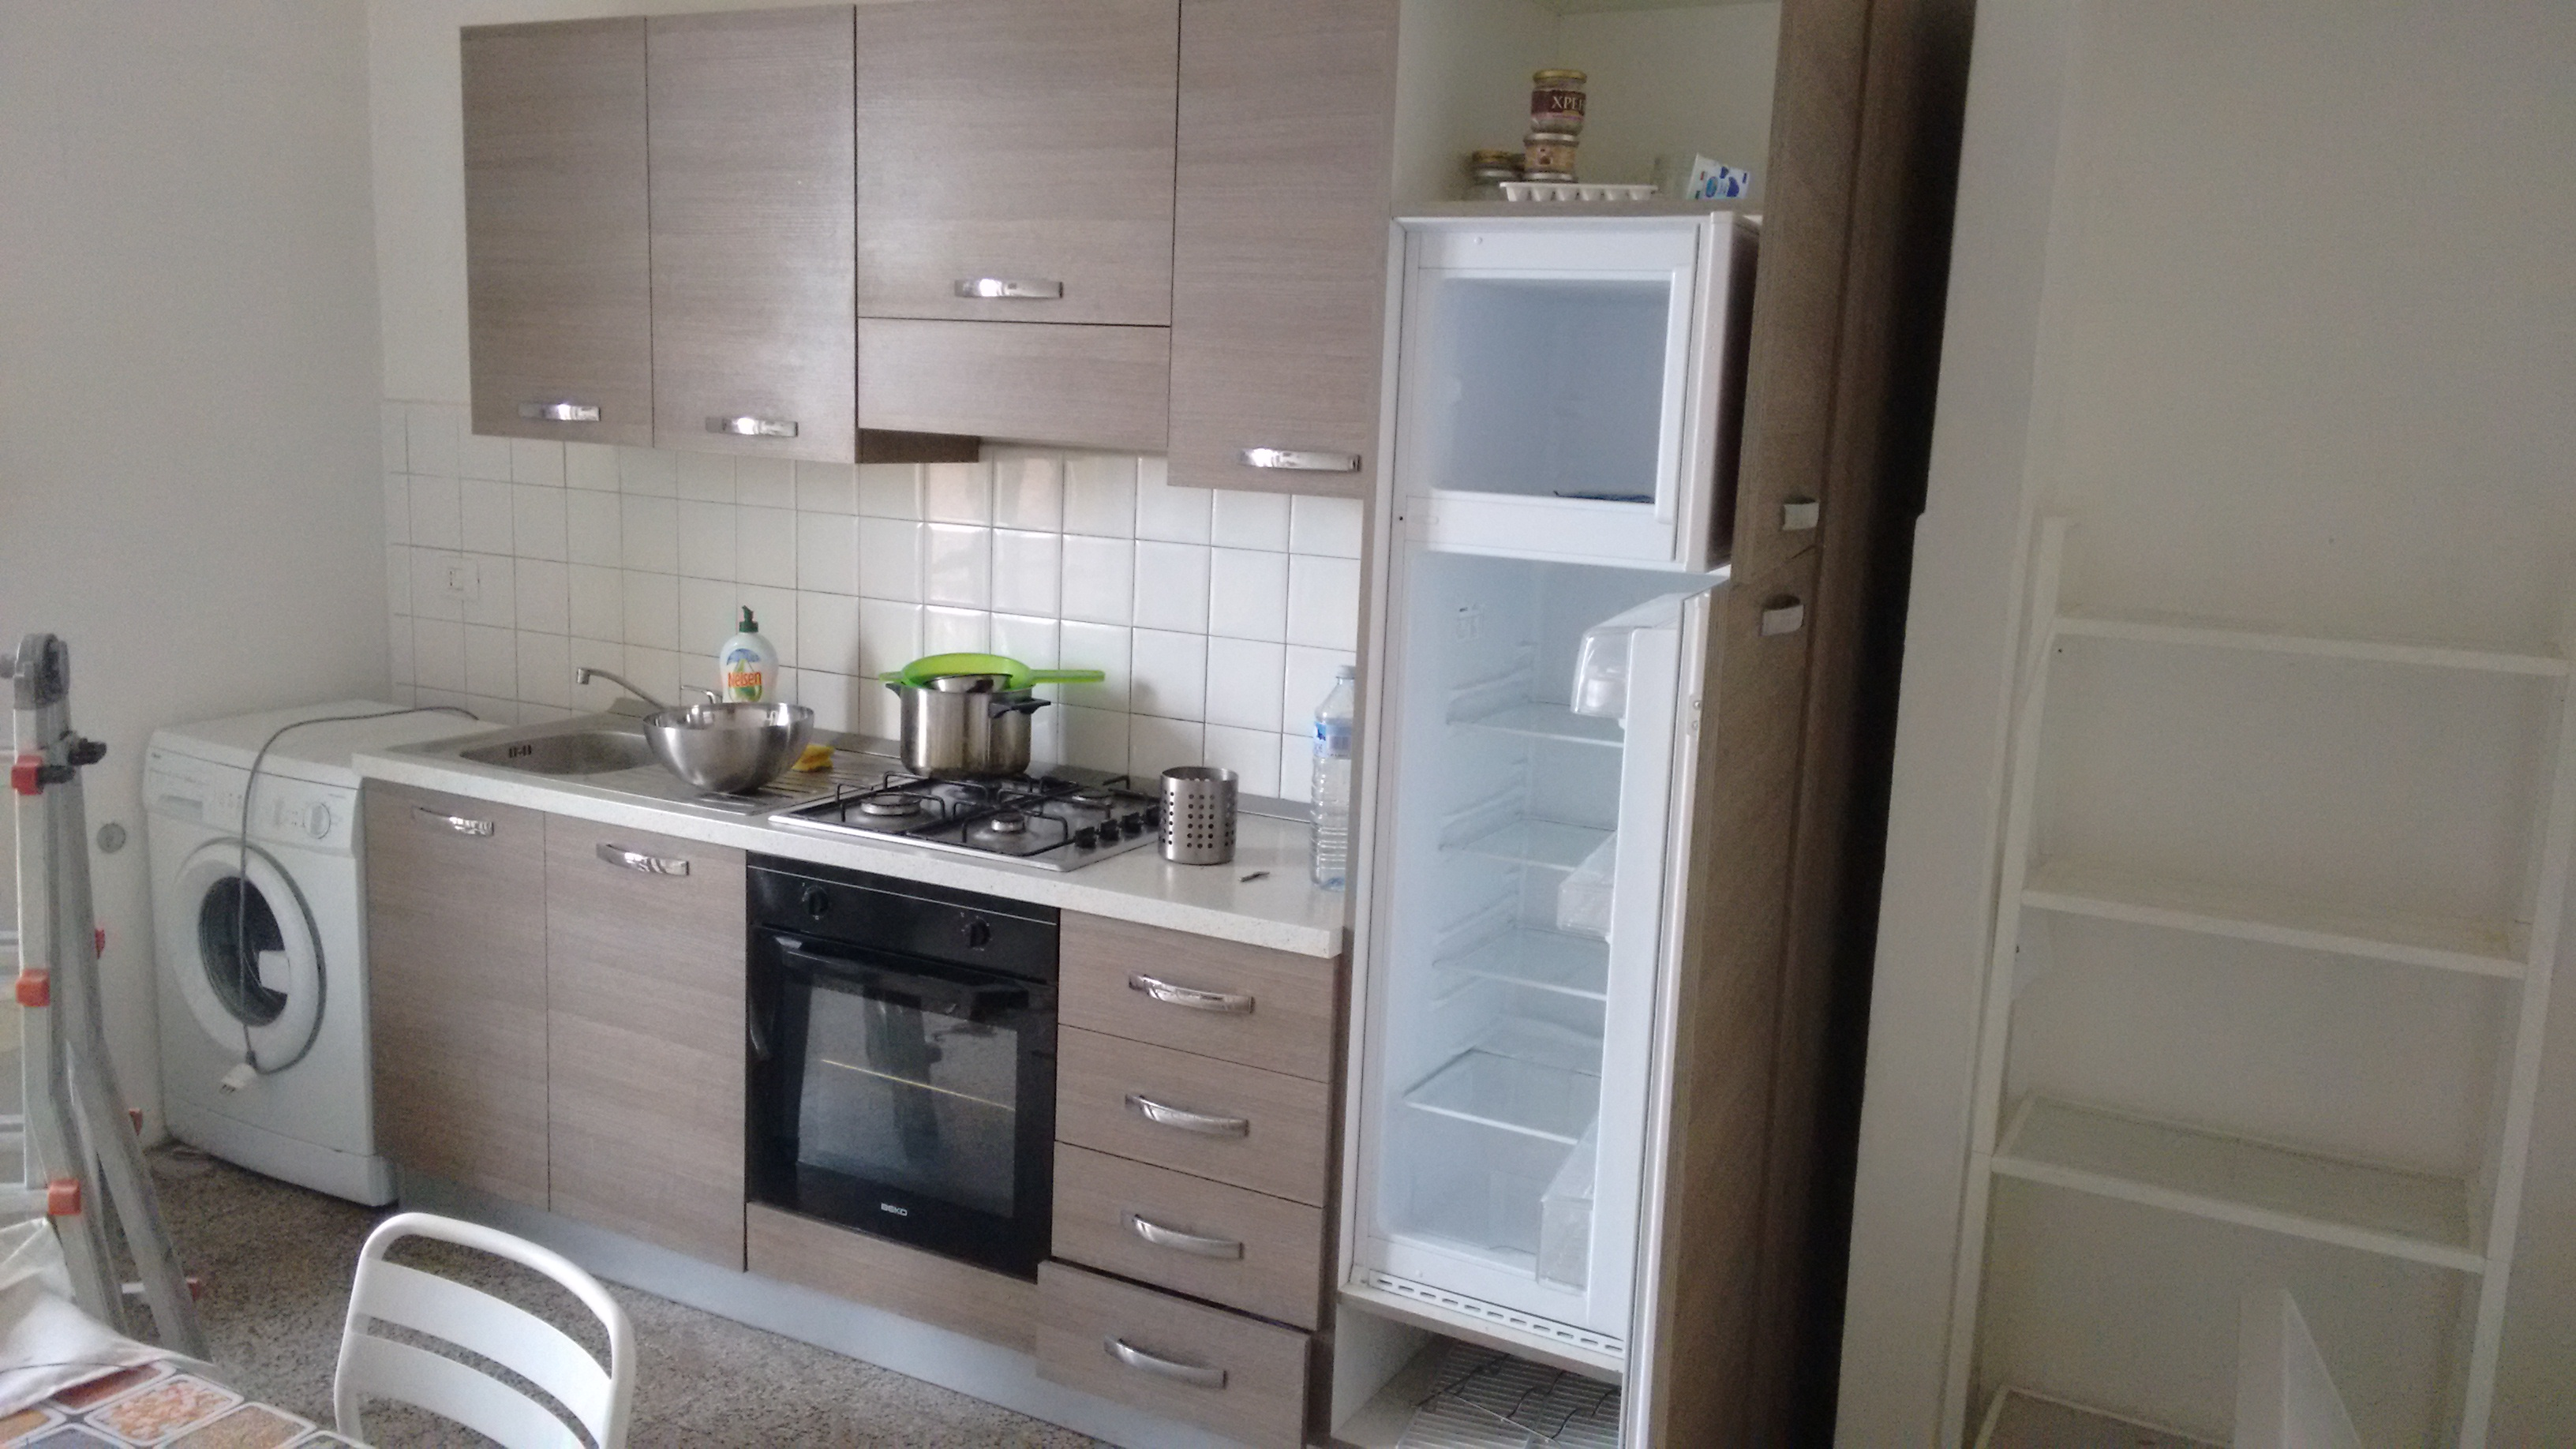 3 bedroom apartment available from now on the assg blog for Available 3 bedroom apartments